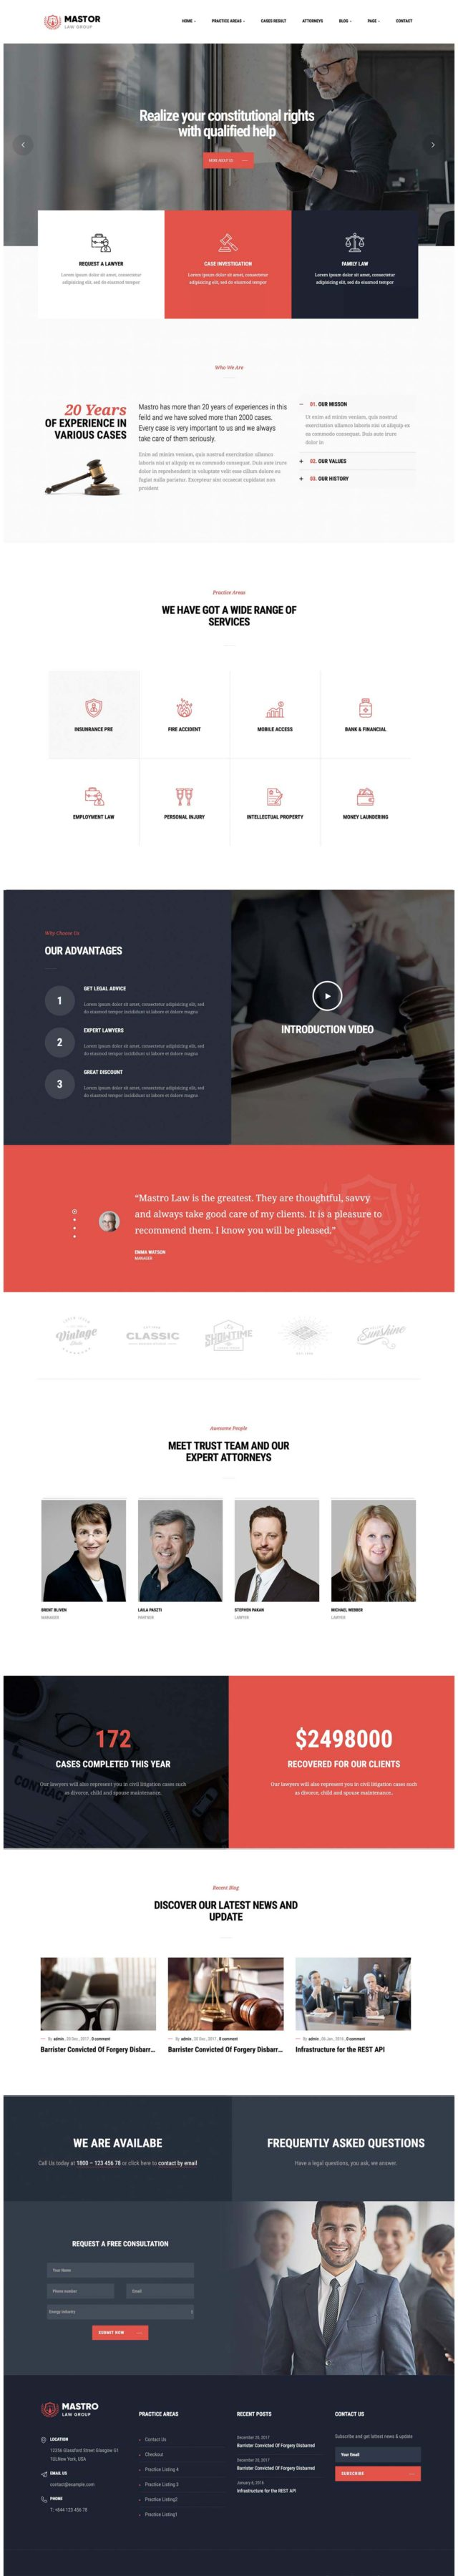 Are these the best lawyer WordPress themes for 2018? - Beam Local